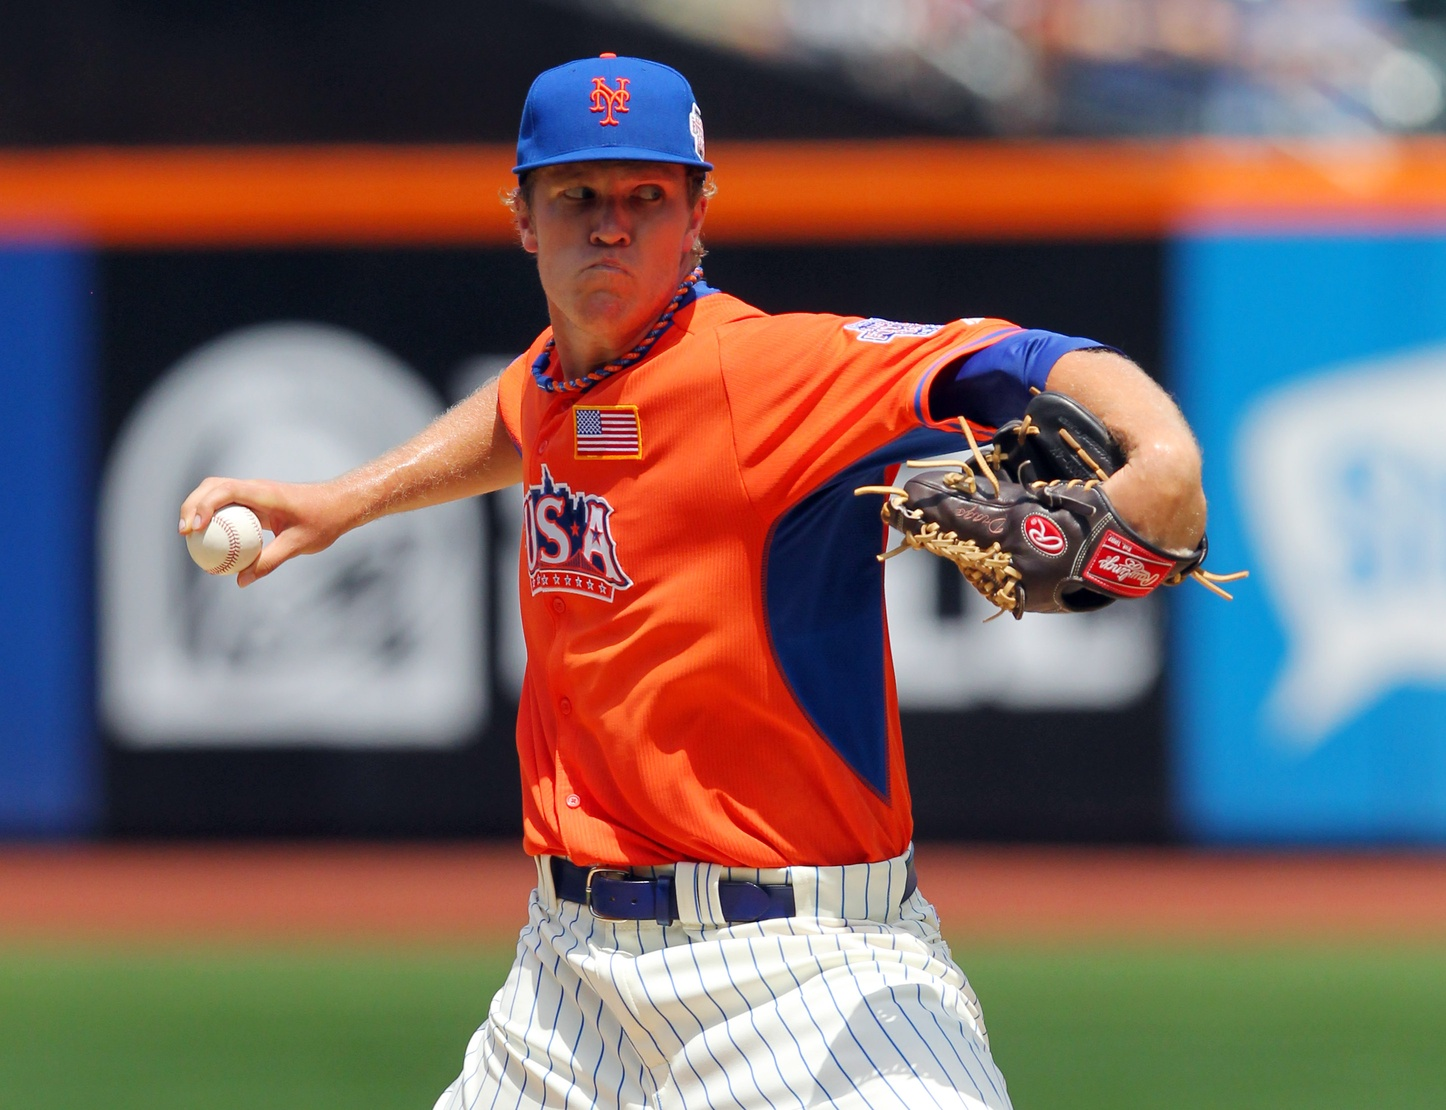 Syndergaard Ranked No. 3 Among RHP Prospects